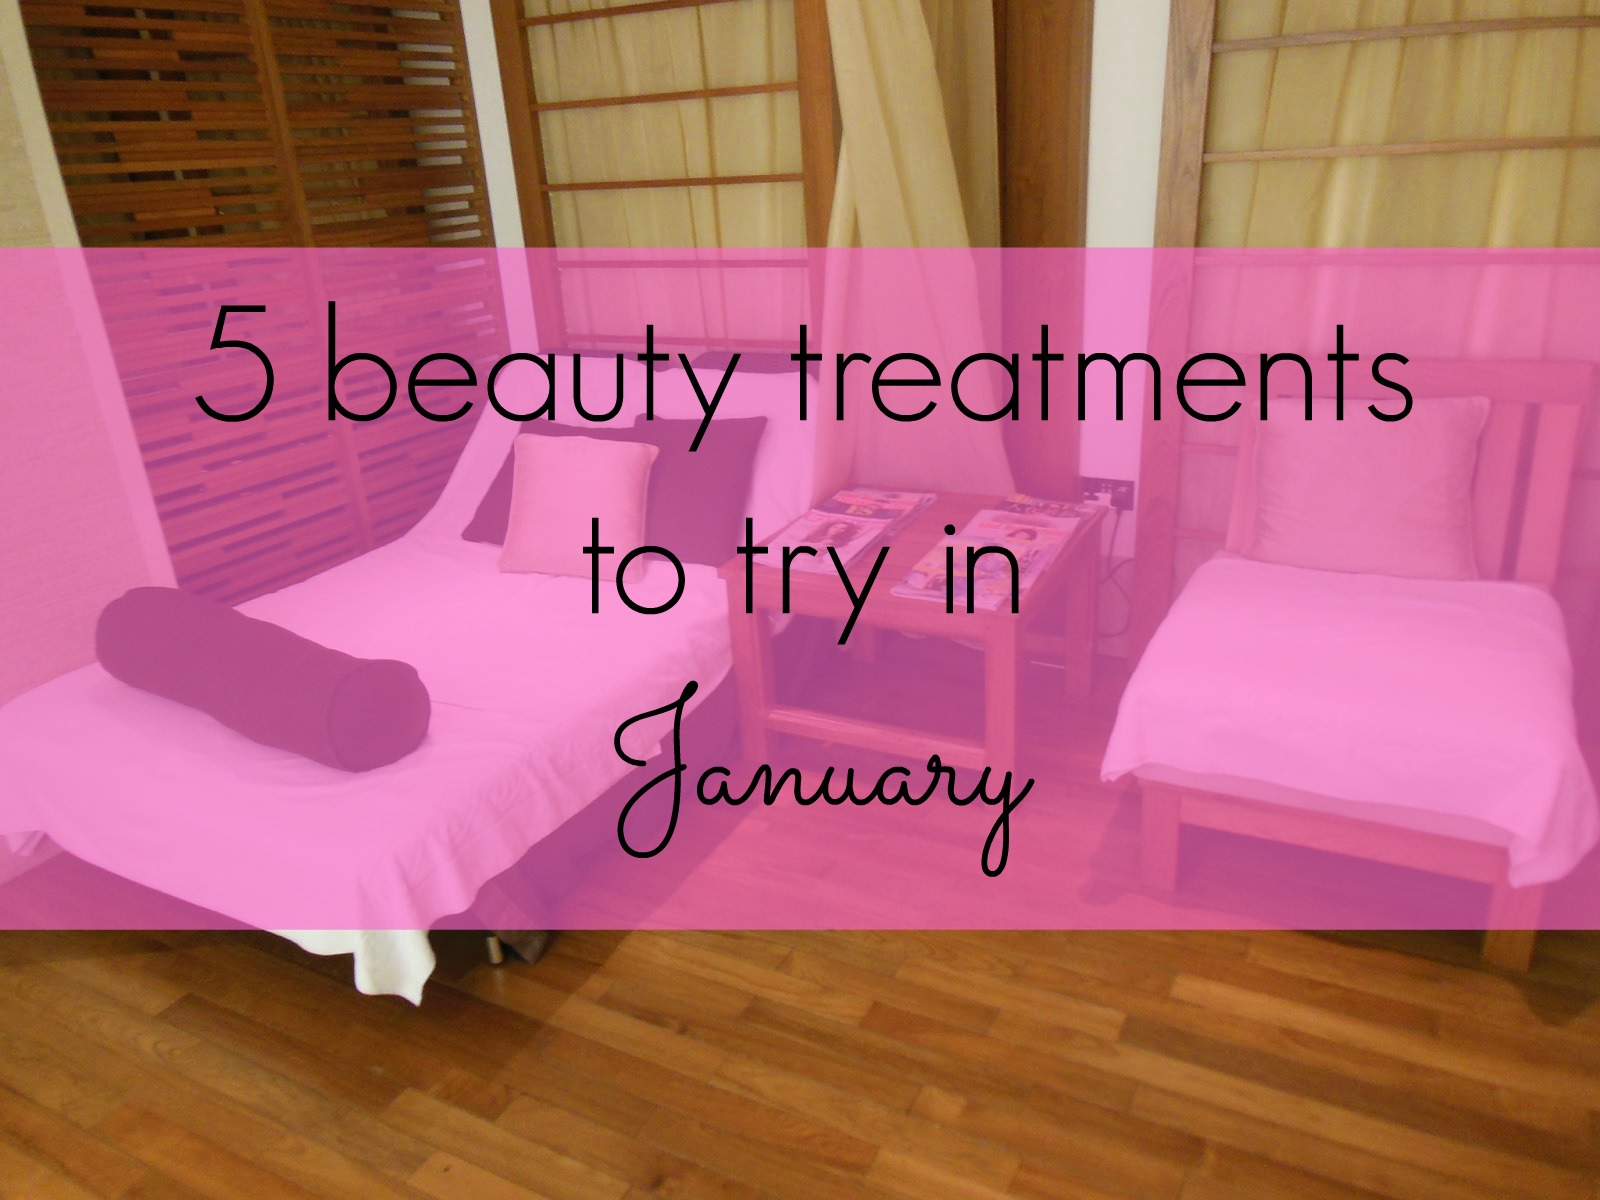 five beauty treatments to try in January